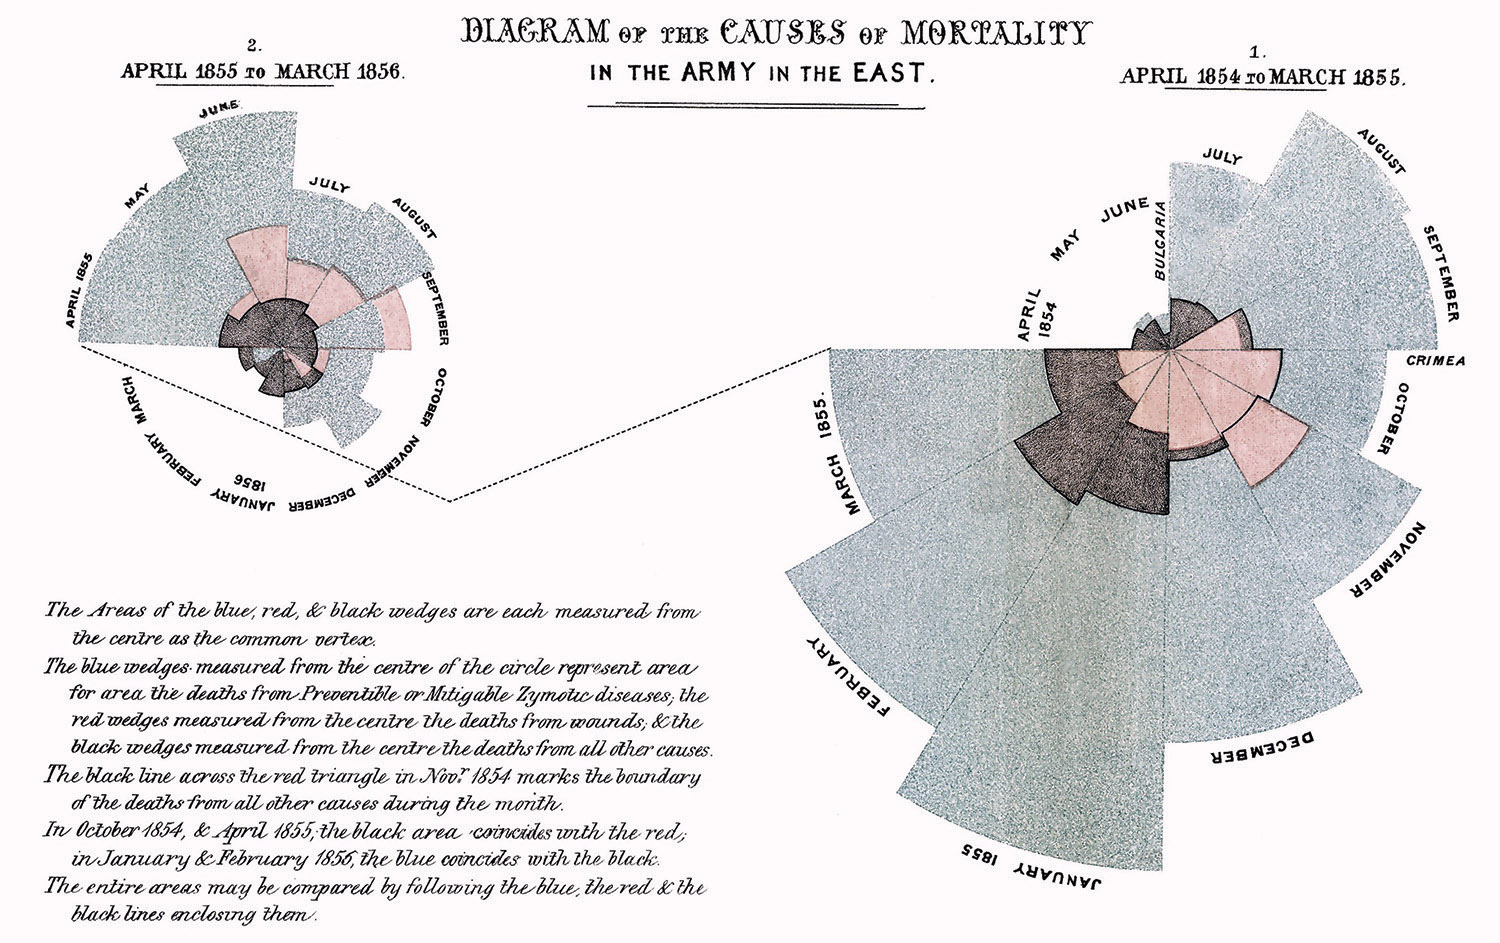 """Diagram of the Causes of Mortality in the Army in the East,"" in F. Nightingale, A Contribution to the Sanitary History of the British Army during the Late War with Russia (London: John W. Parker, 1859)."